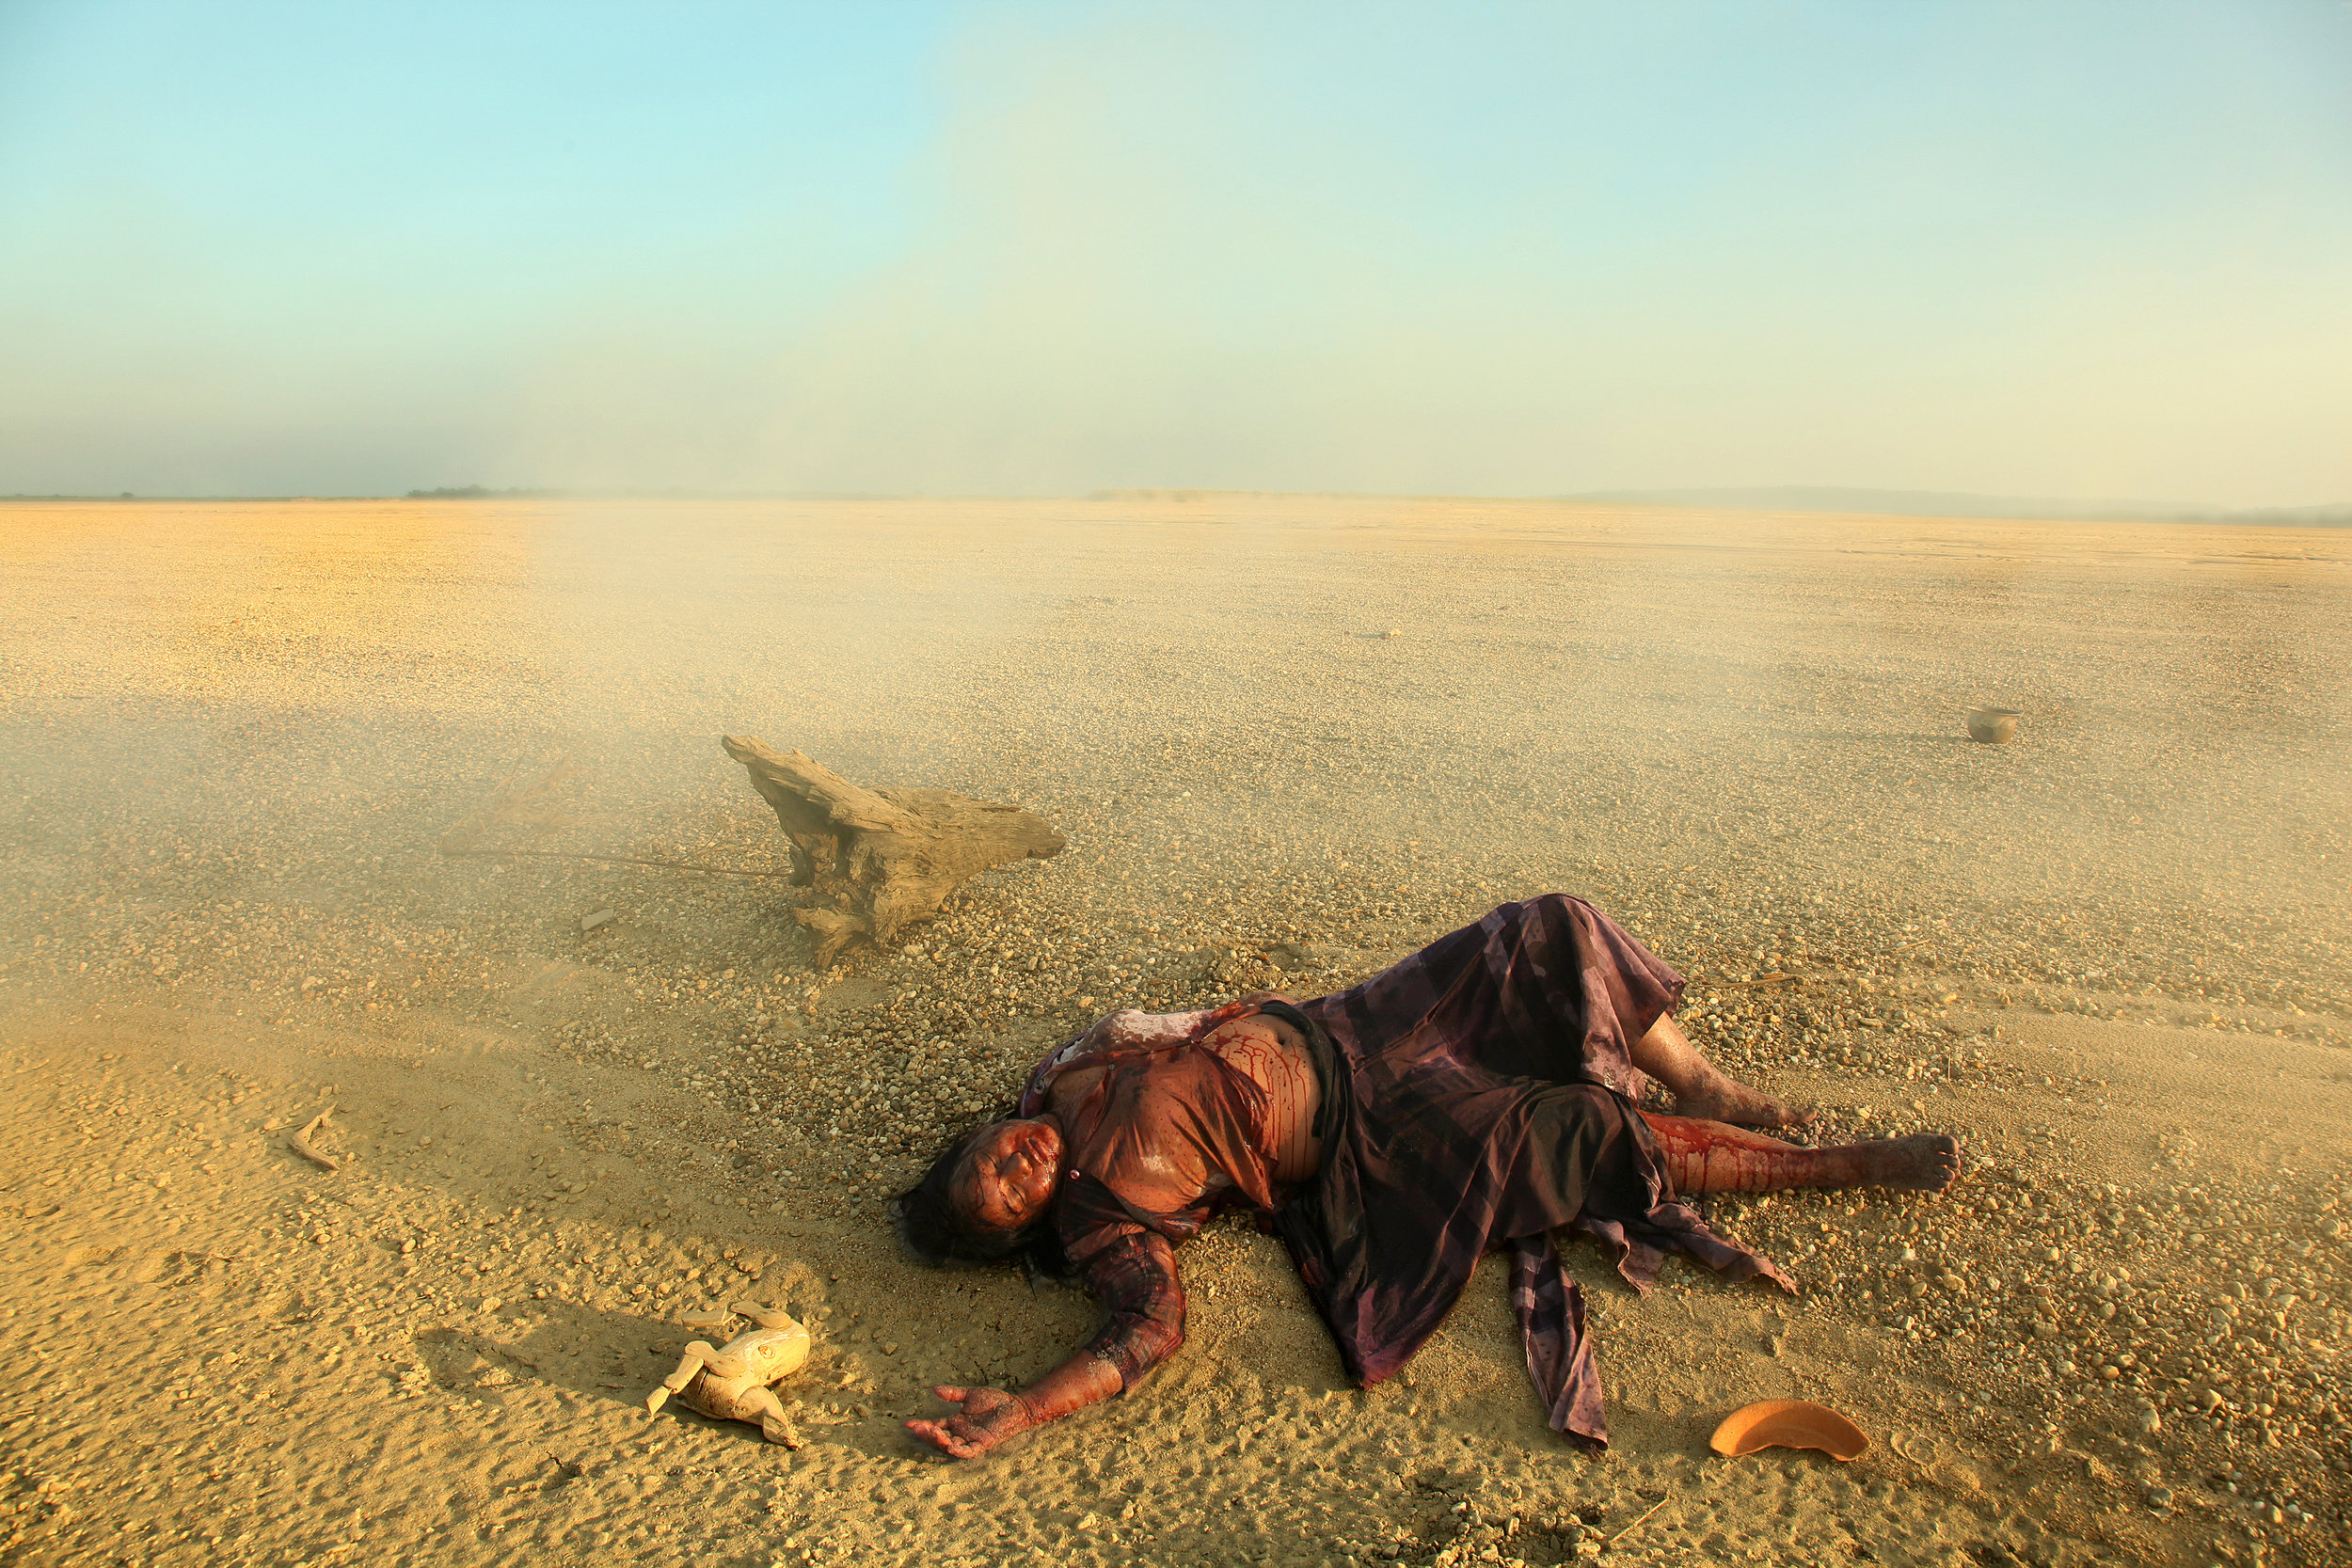 Nge Lay, Observing of Self Being Dead [2] , 2011. Color photograph. Courtesy of the artist.